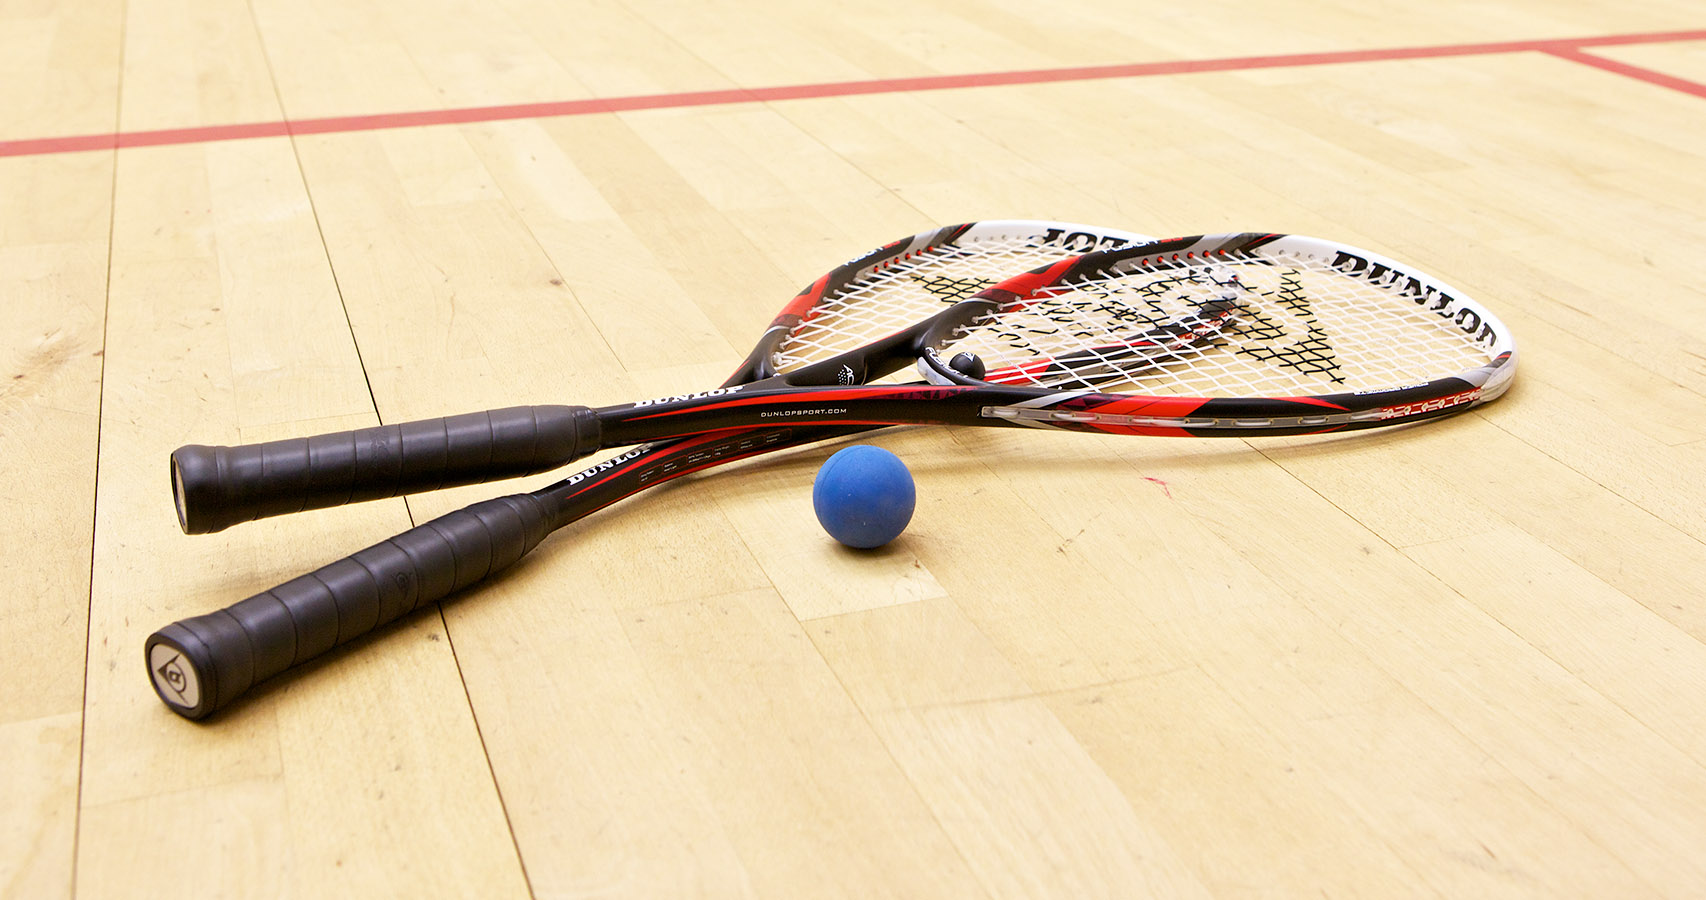 Two rackets on a squash court